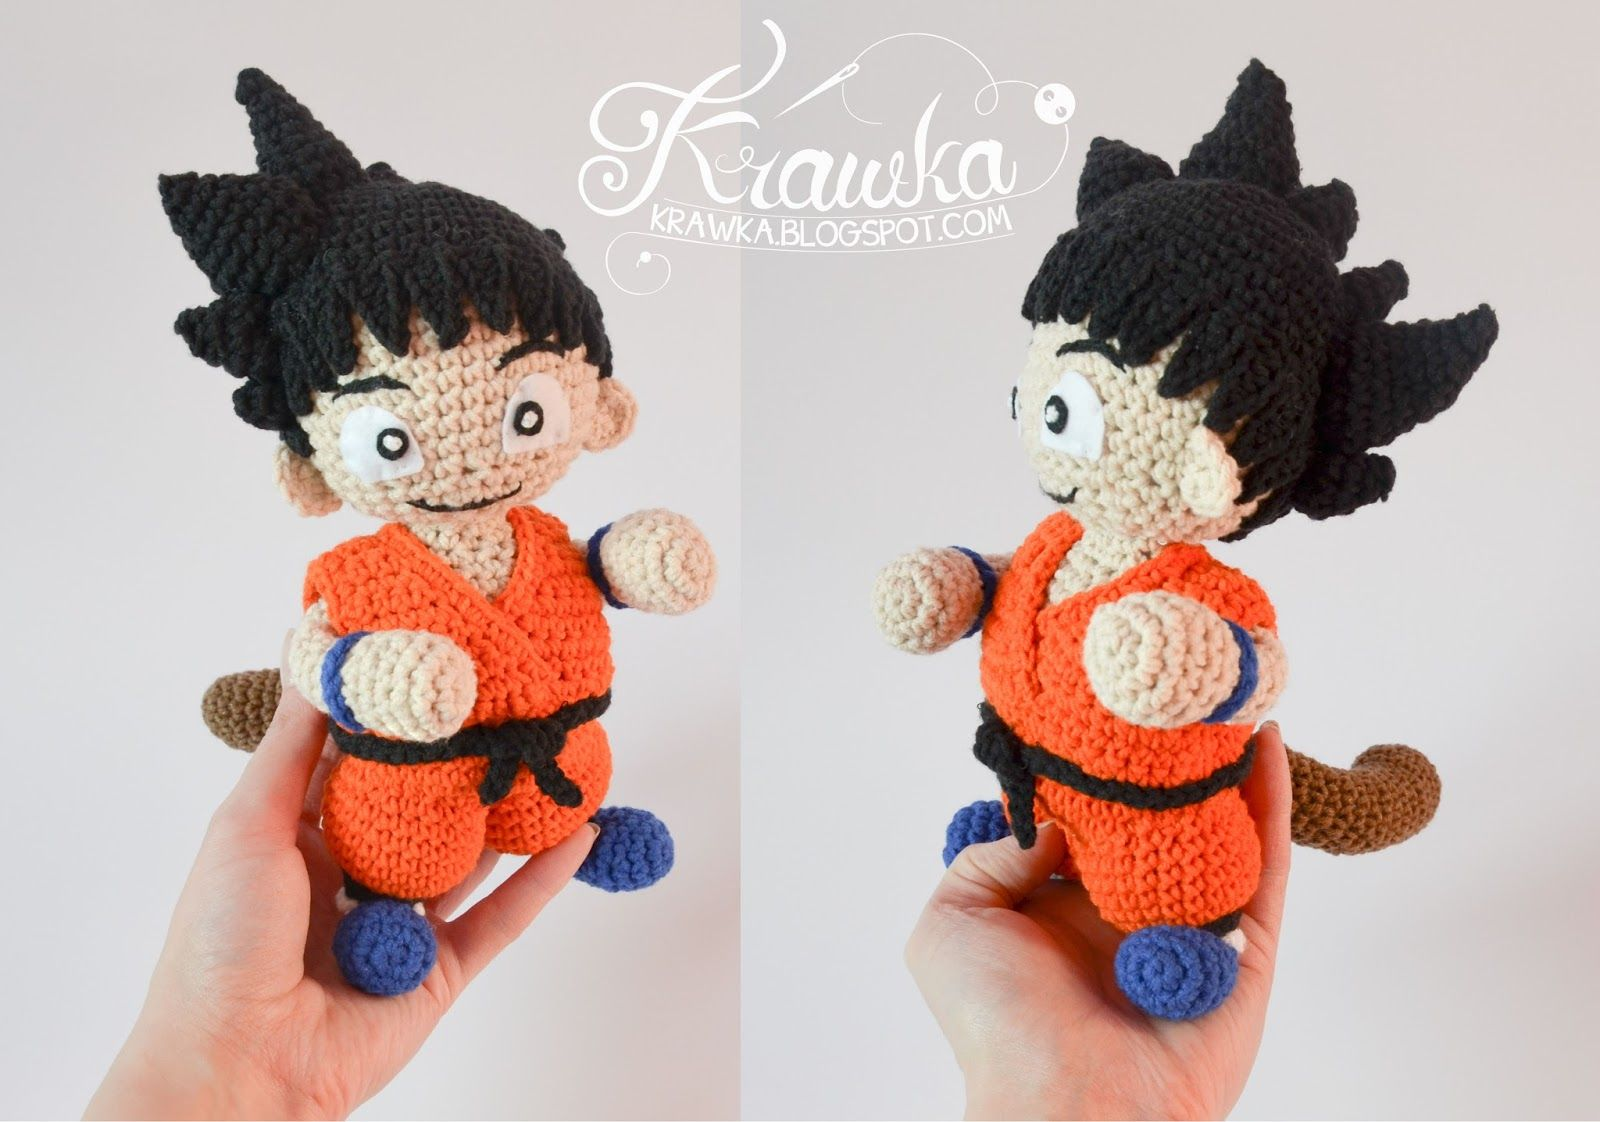 Krawka: Son Goku - Dragon Ball inspired crochet pattern by Krawka ...